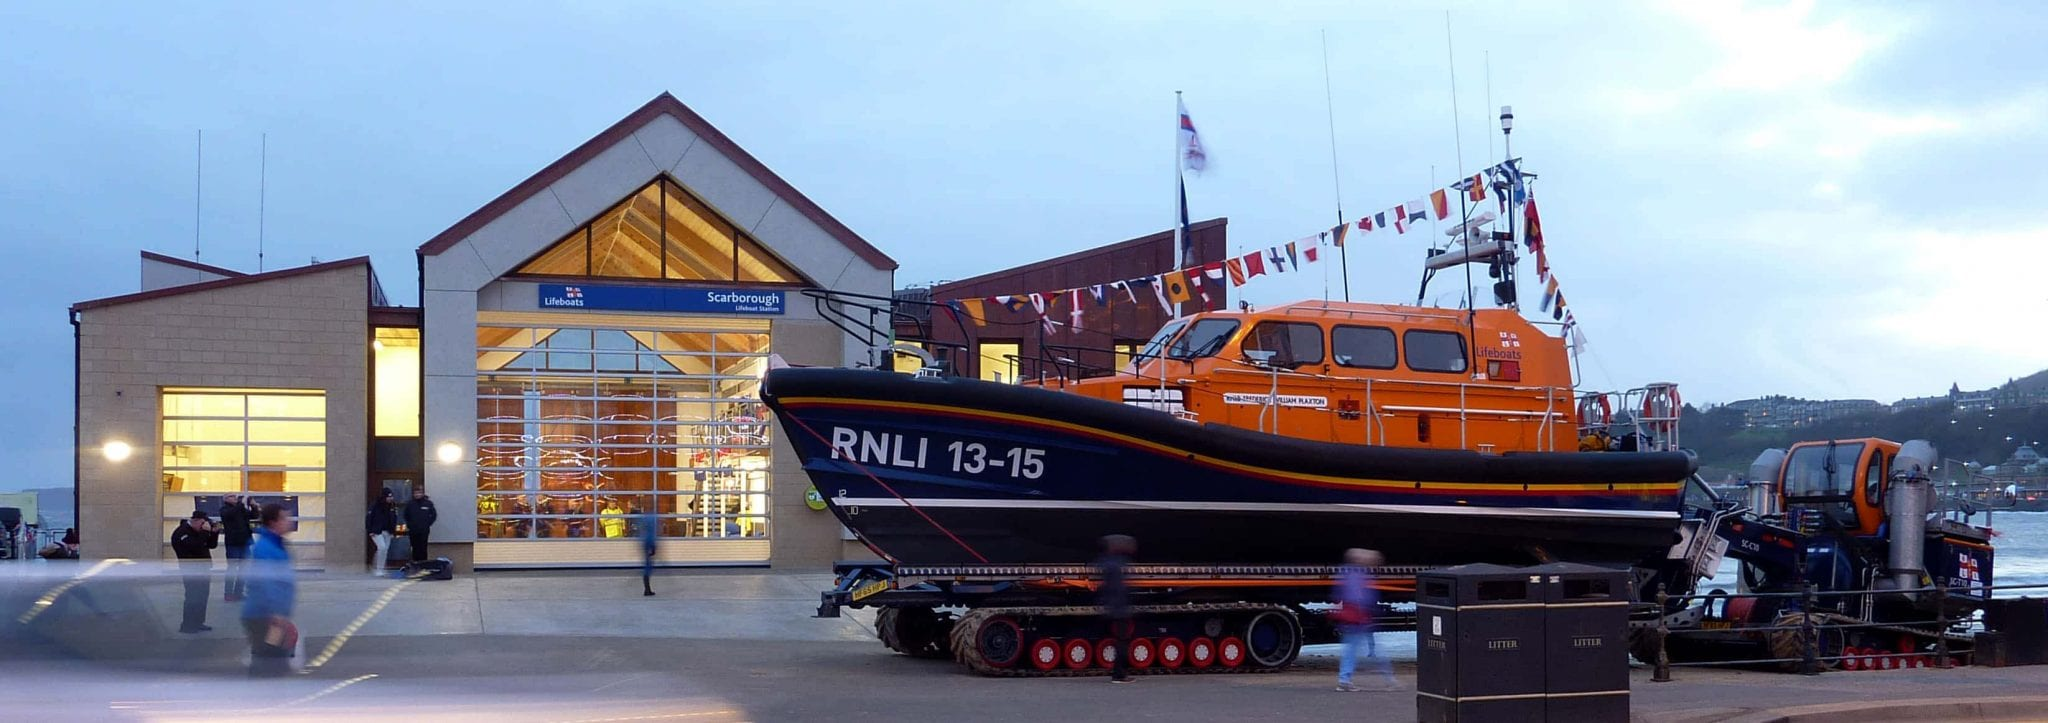 Yeoman Rainguard Stands up to the Elements at New RNLI Station